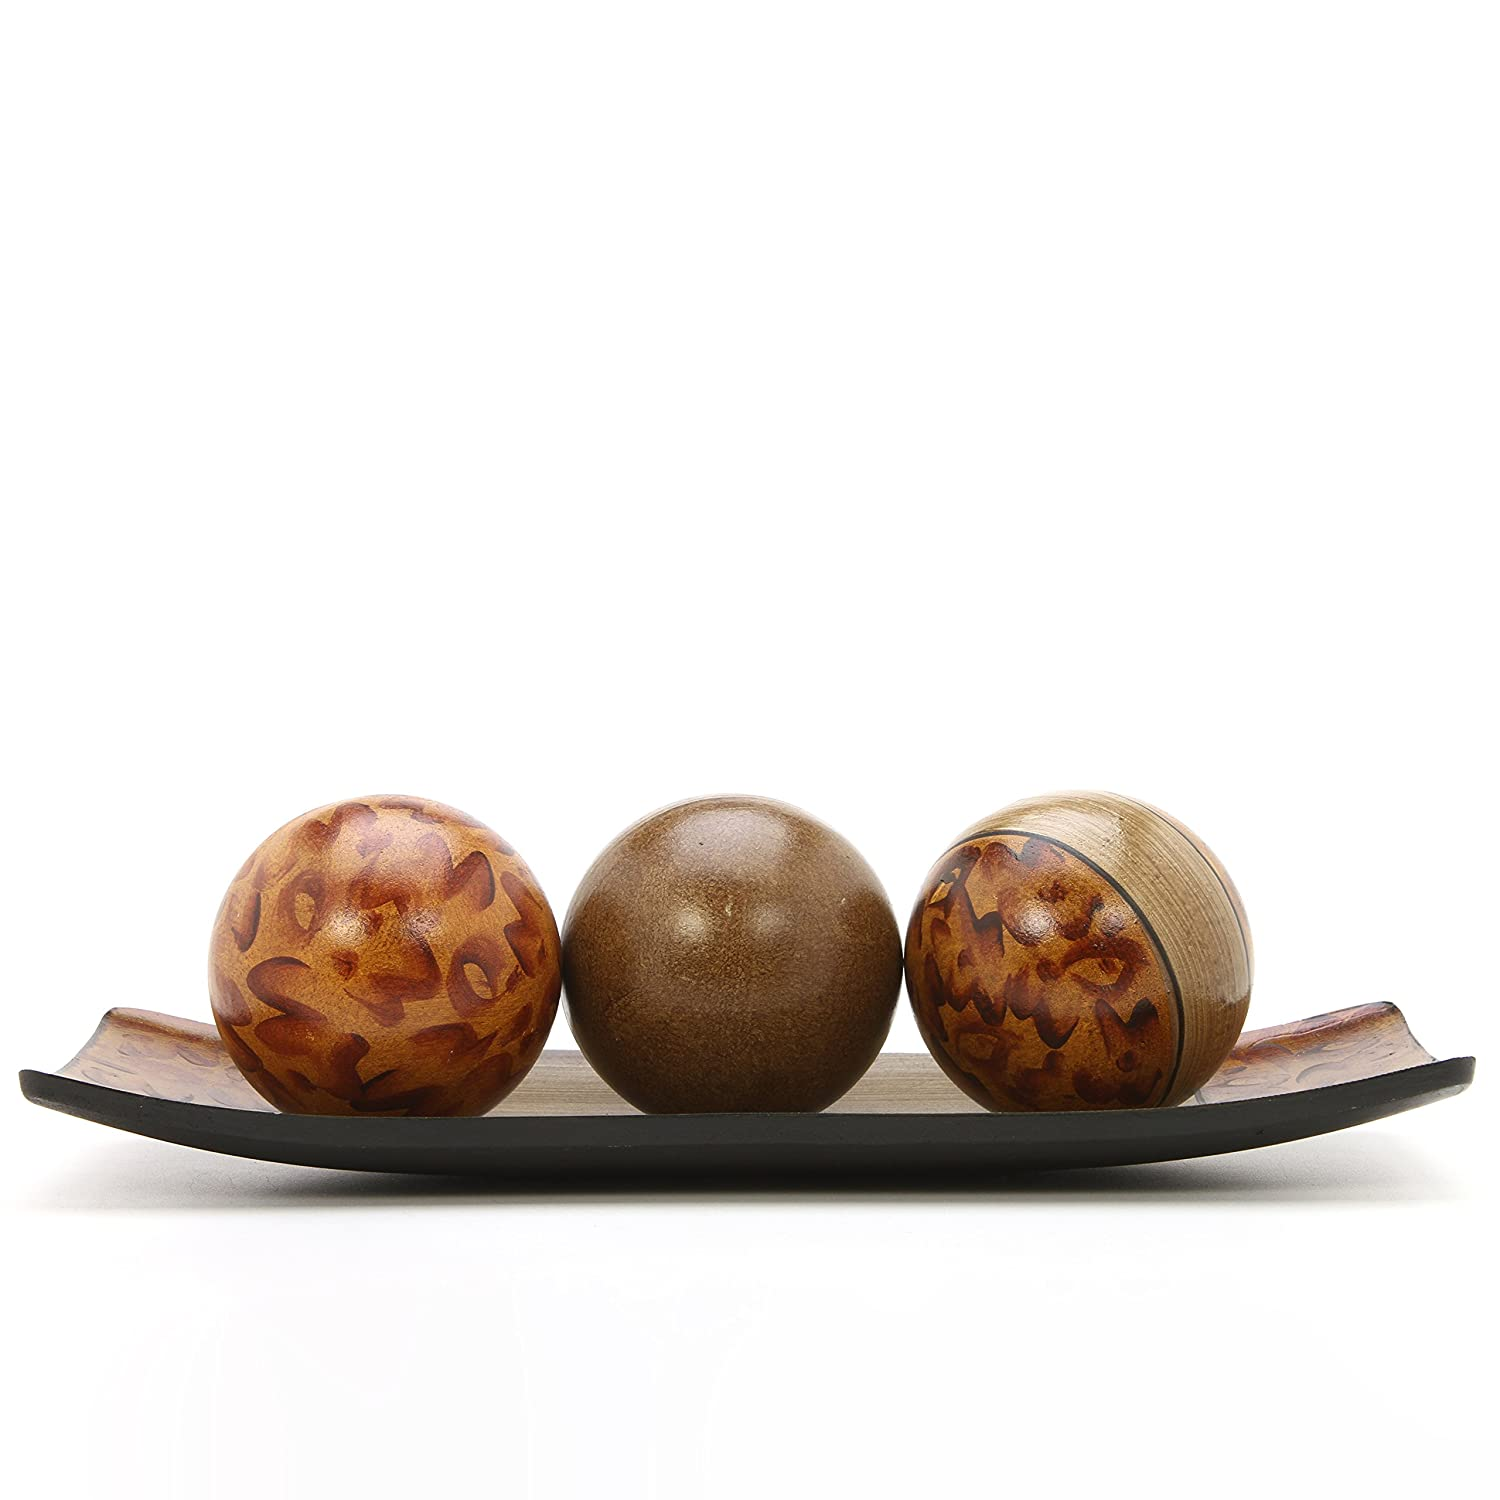 Hosley's Brown Decorative Tray and Orb/ball Set- 15 Long, Burlwood Style Finish. Ideal GIFT for Weddings, Party, Spa, Reiki, Meditation O9 Elegant ExpressionsTM Hosley® FBA_BS49494WD